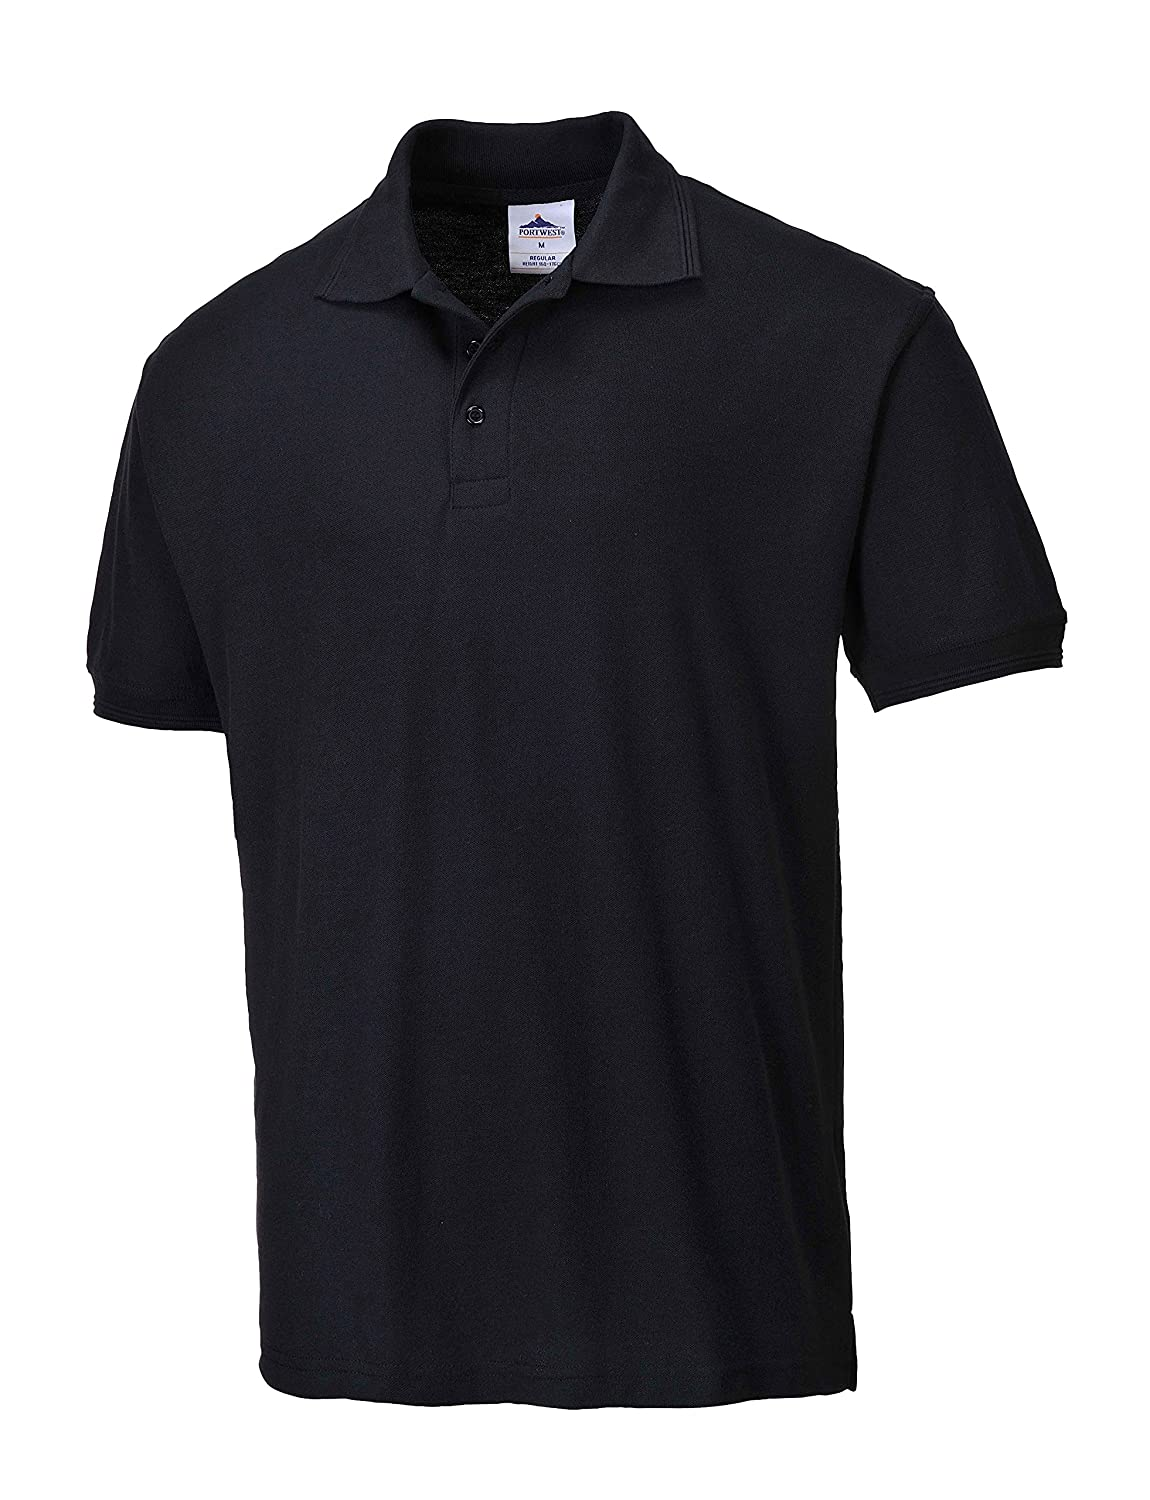 Portwest B210PURXXXL - Naples polo shirt color: purple talla: 3 xl ...